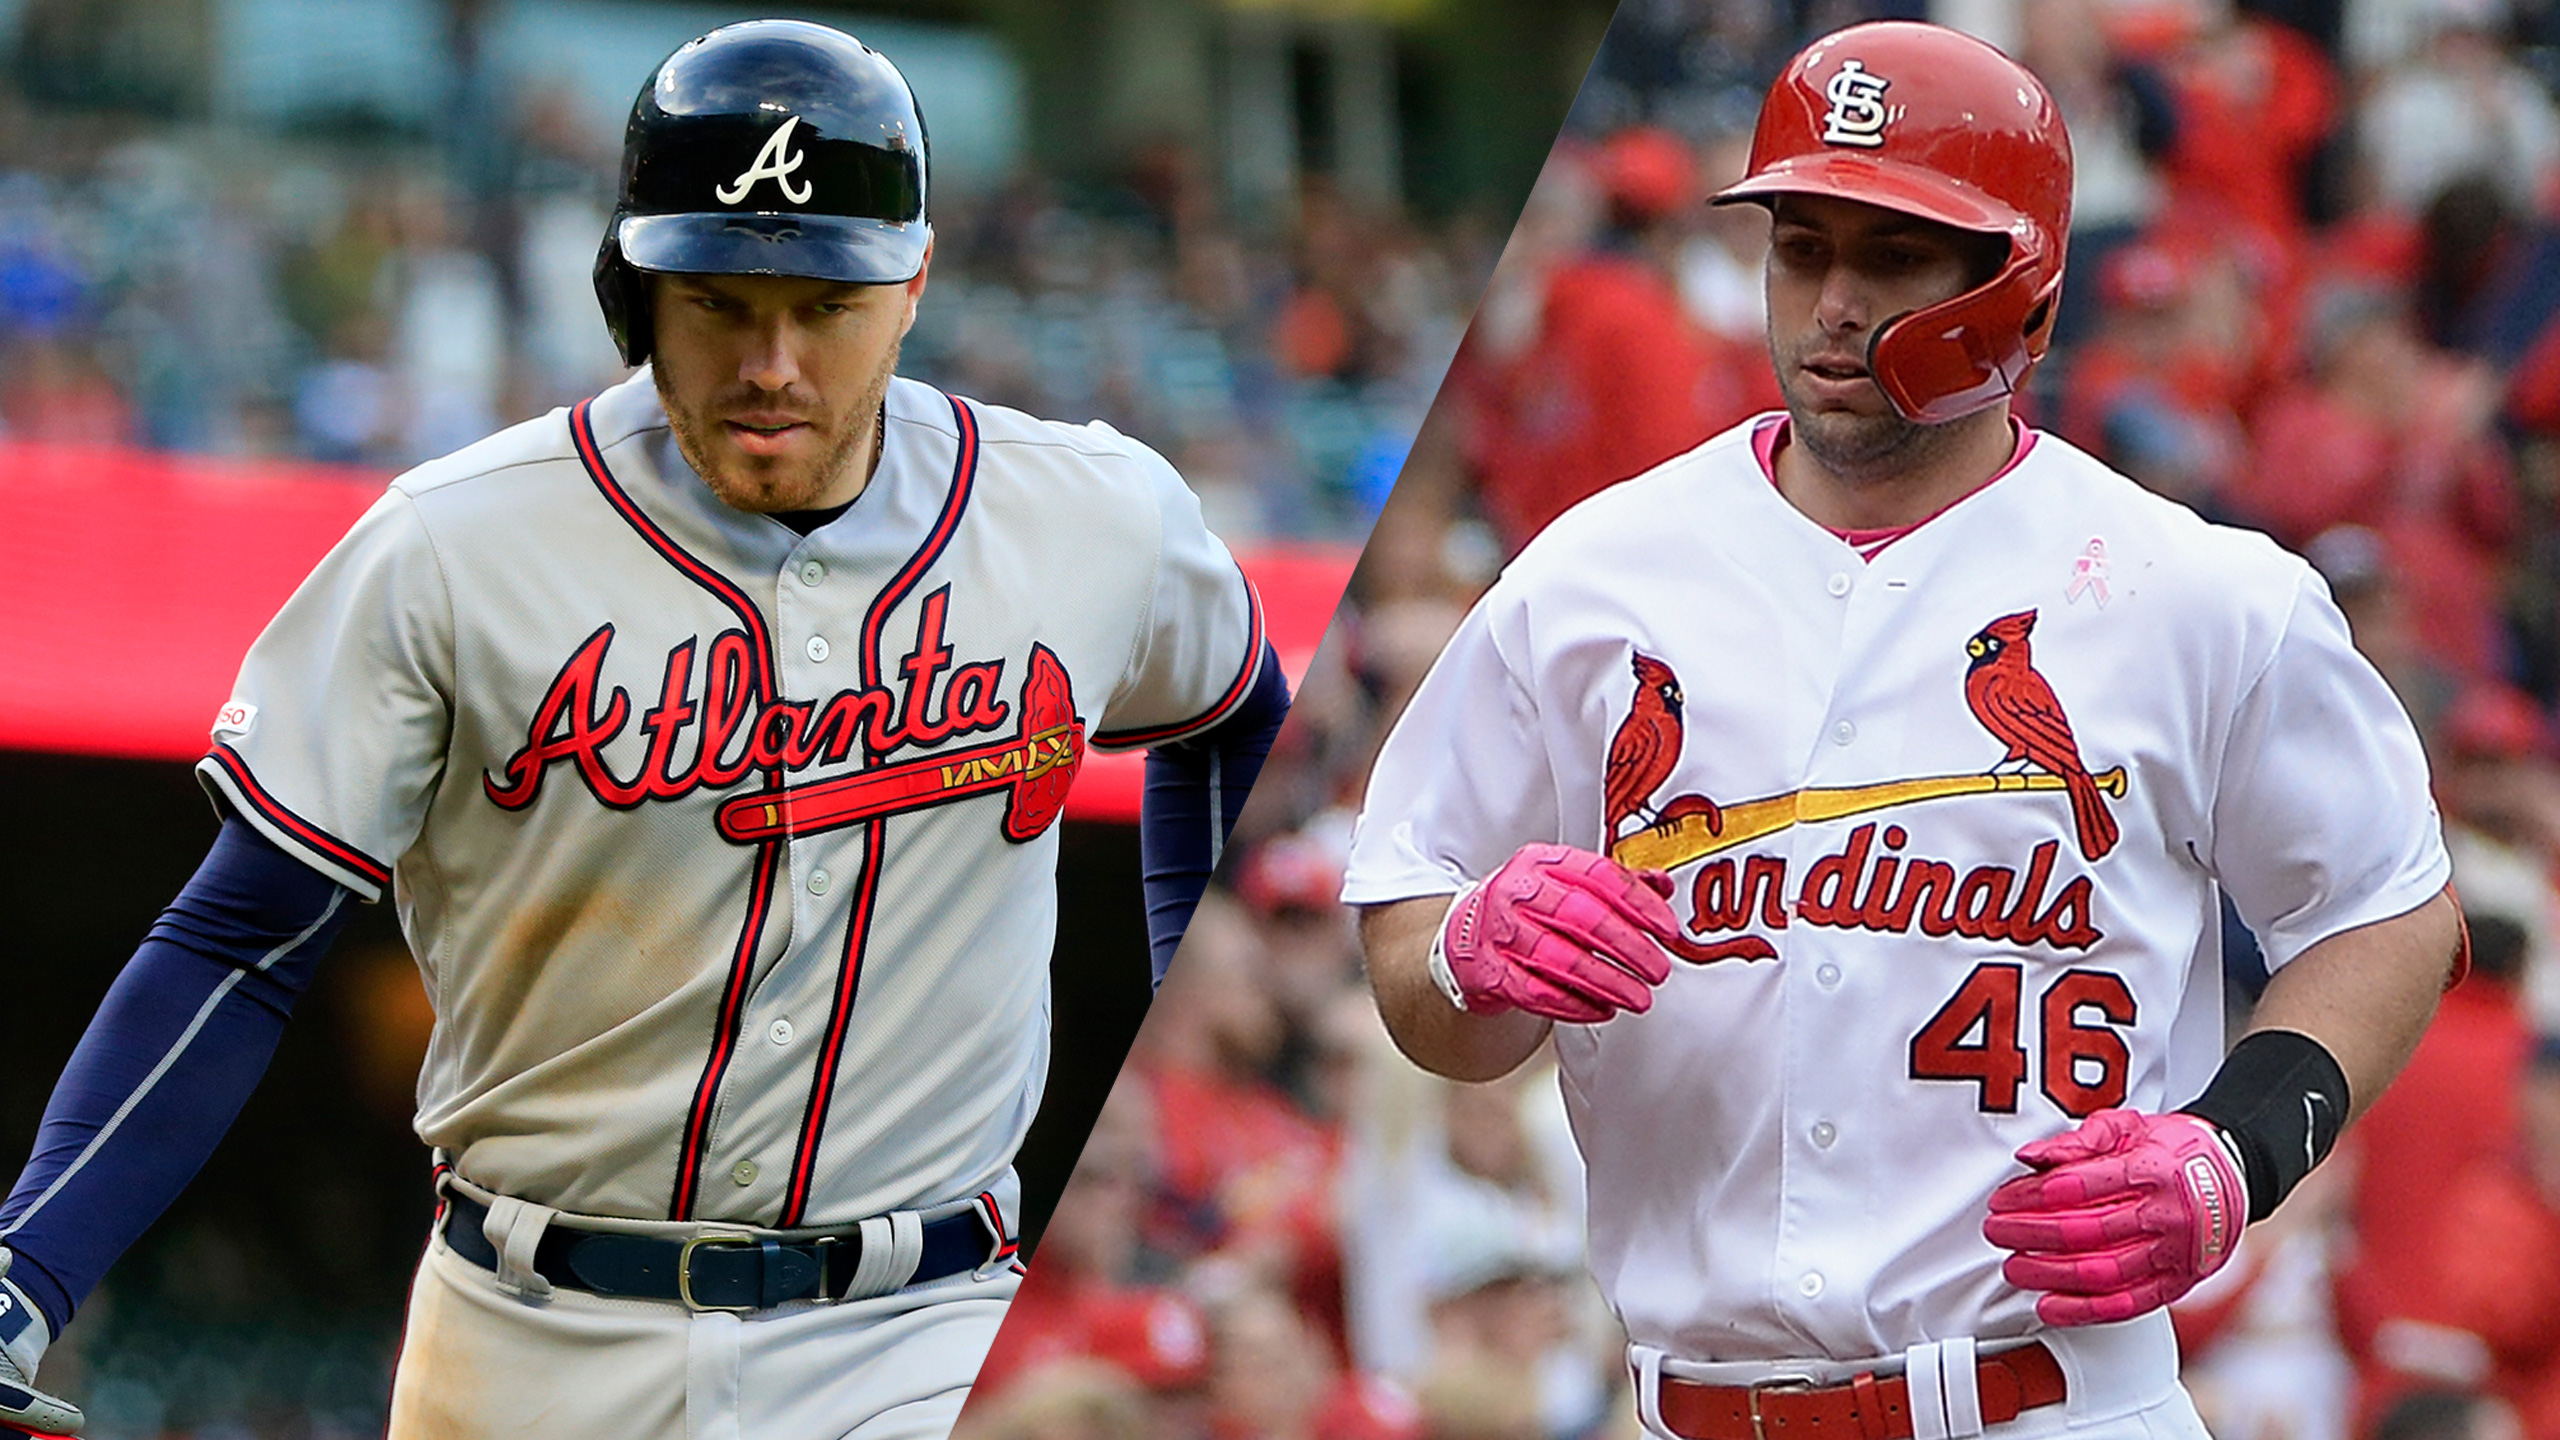 Atlanta Braves vs. St. Louis Cardinals (re-air)